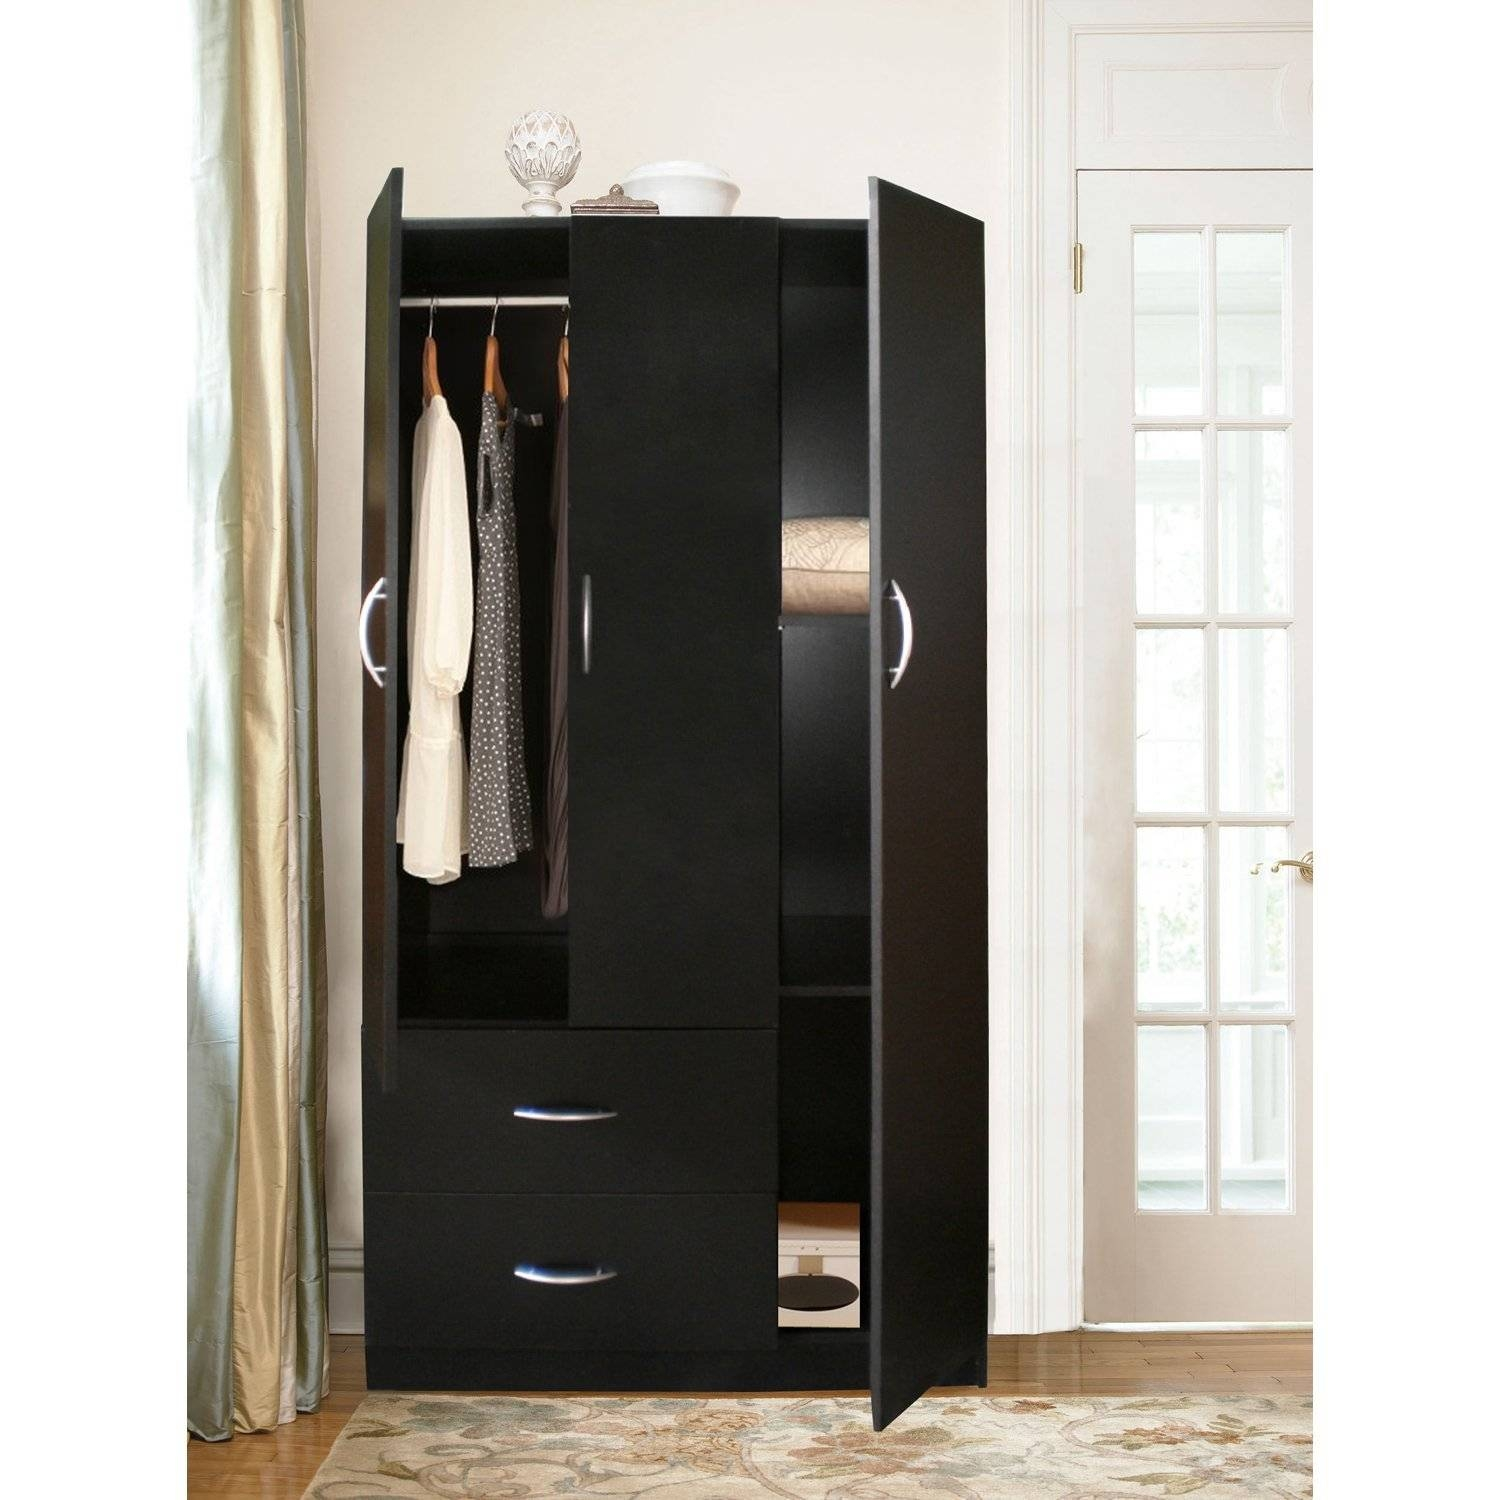 Extraordinary Brown Teak Wood Armoire Wardrobe Storage Cabinet inside Dark Wood Wardrobes Armoires (Image 12 of 30)